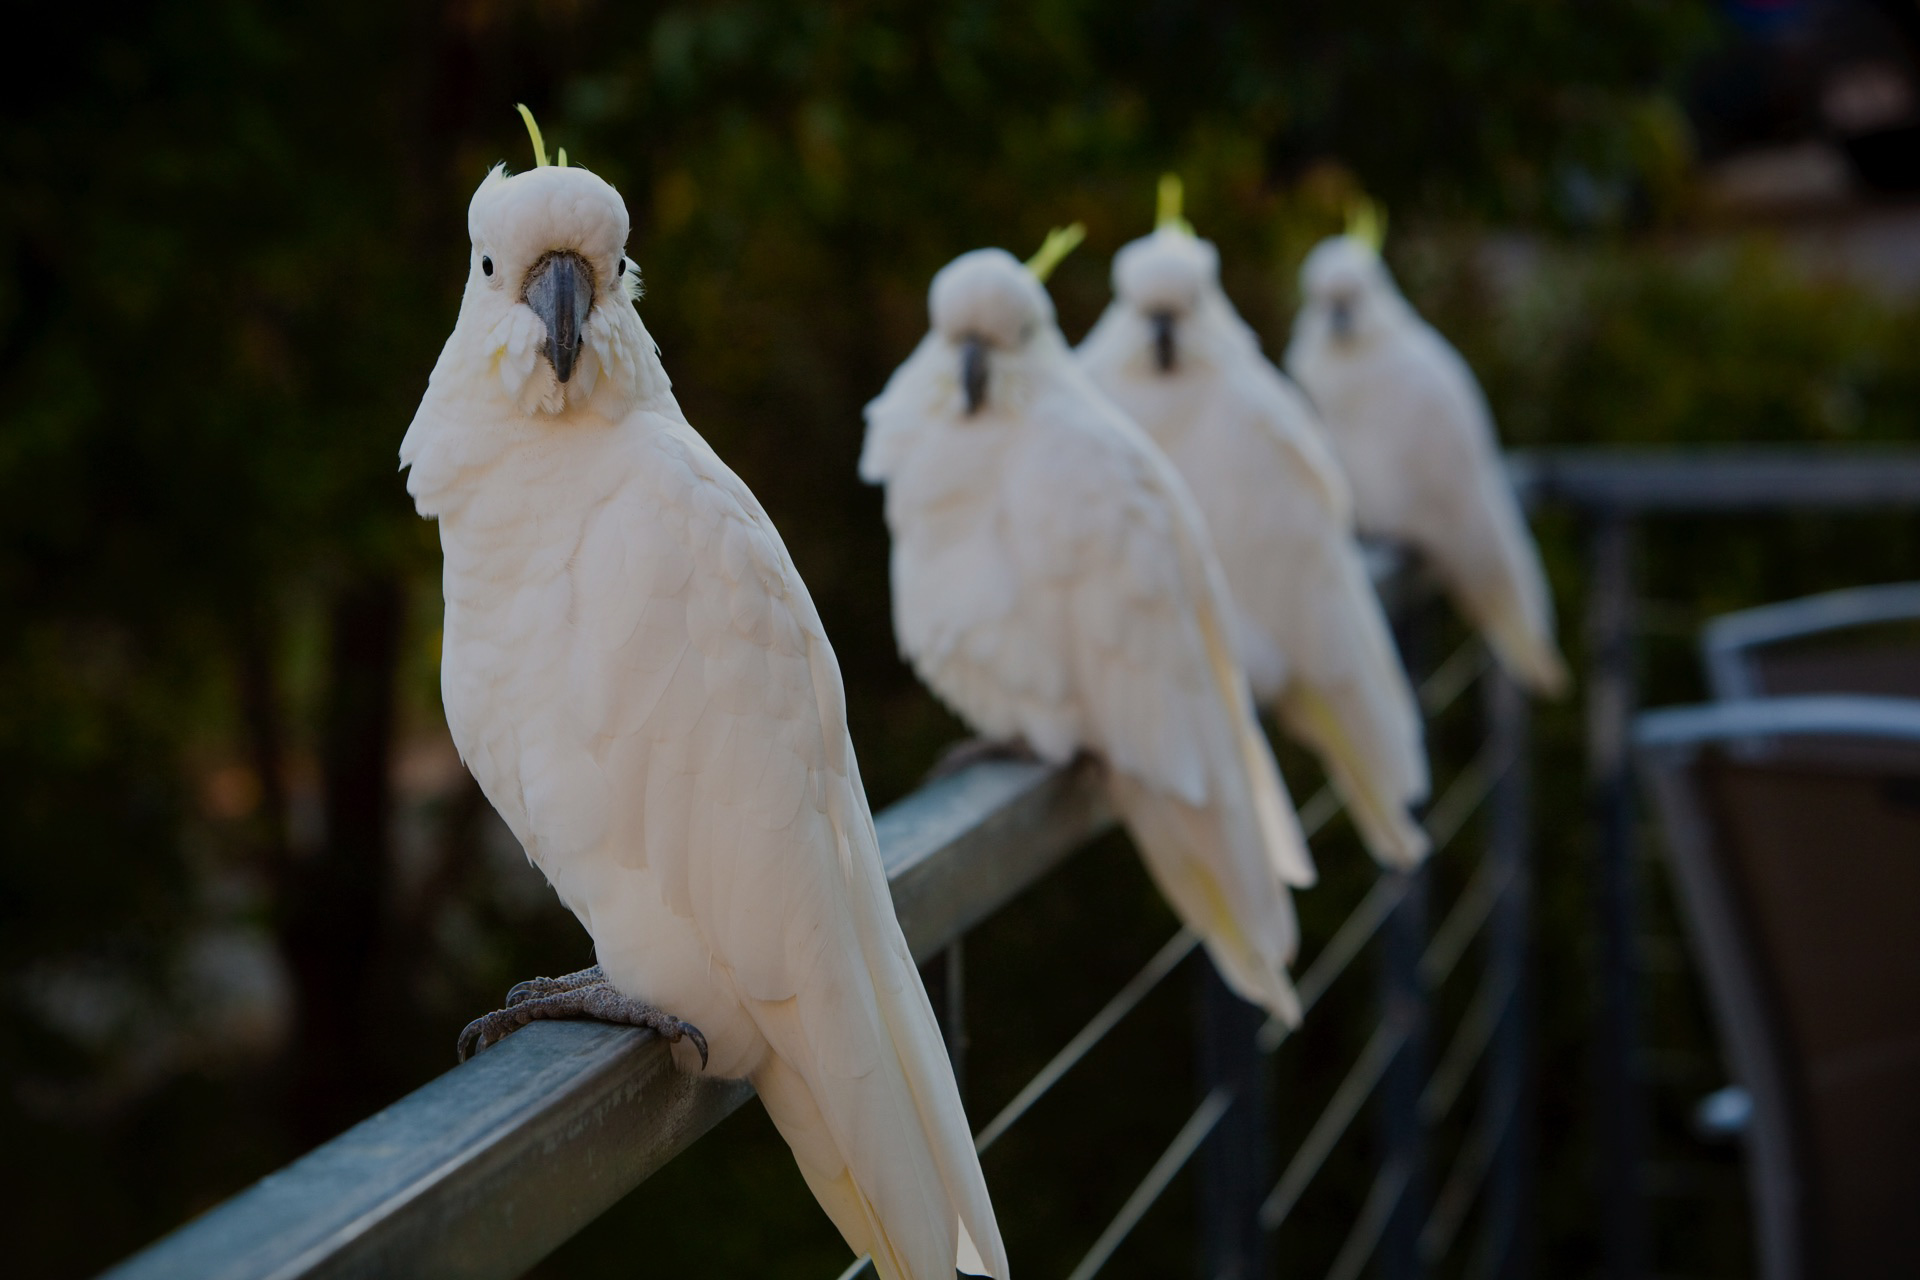 Cockatoos 25 percent black multiply